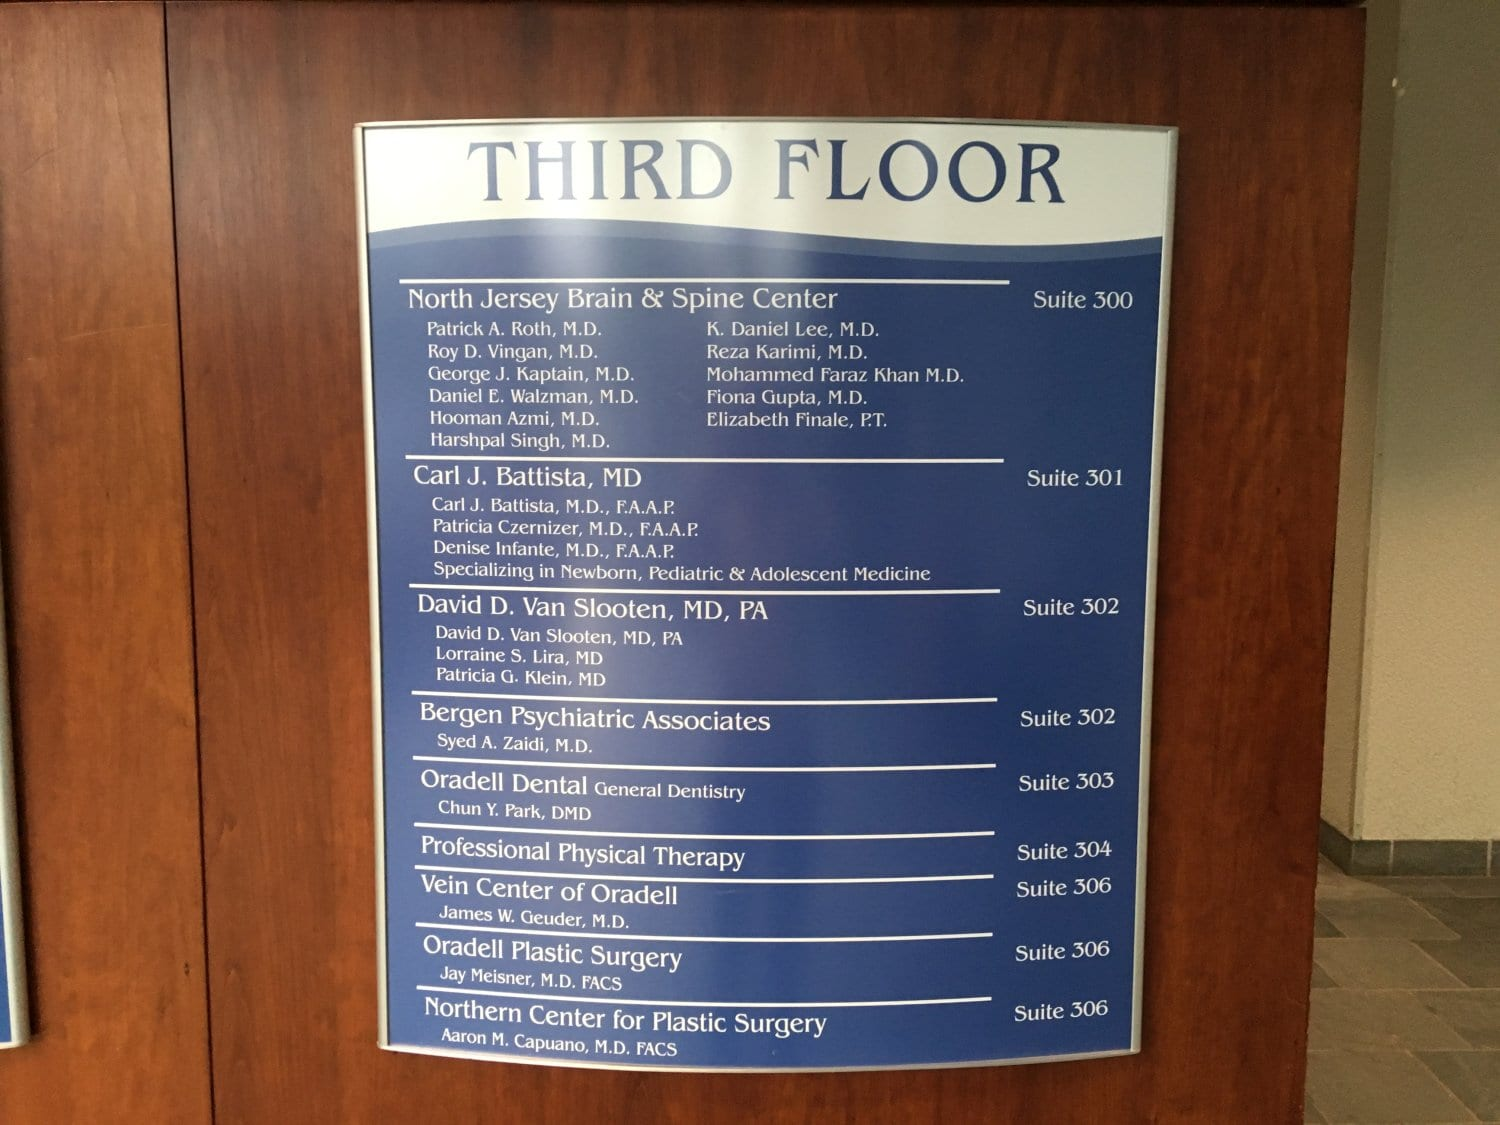 Here is a photo where our physical therapy clinic is located in the building. The facility is in Oradell, New Jersey.